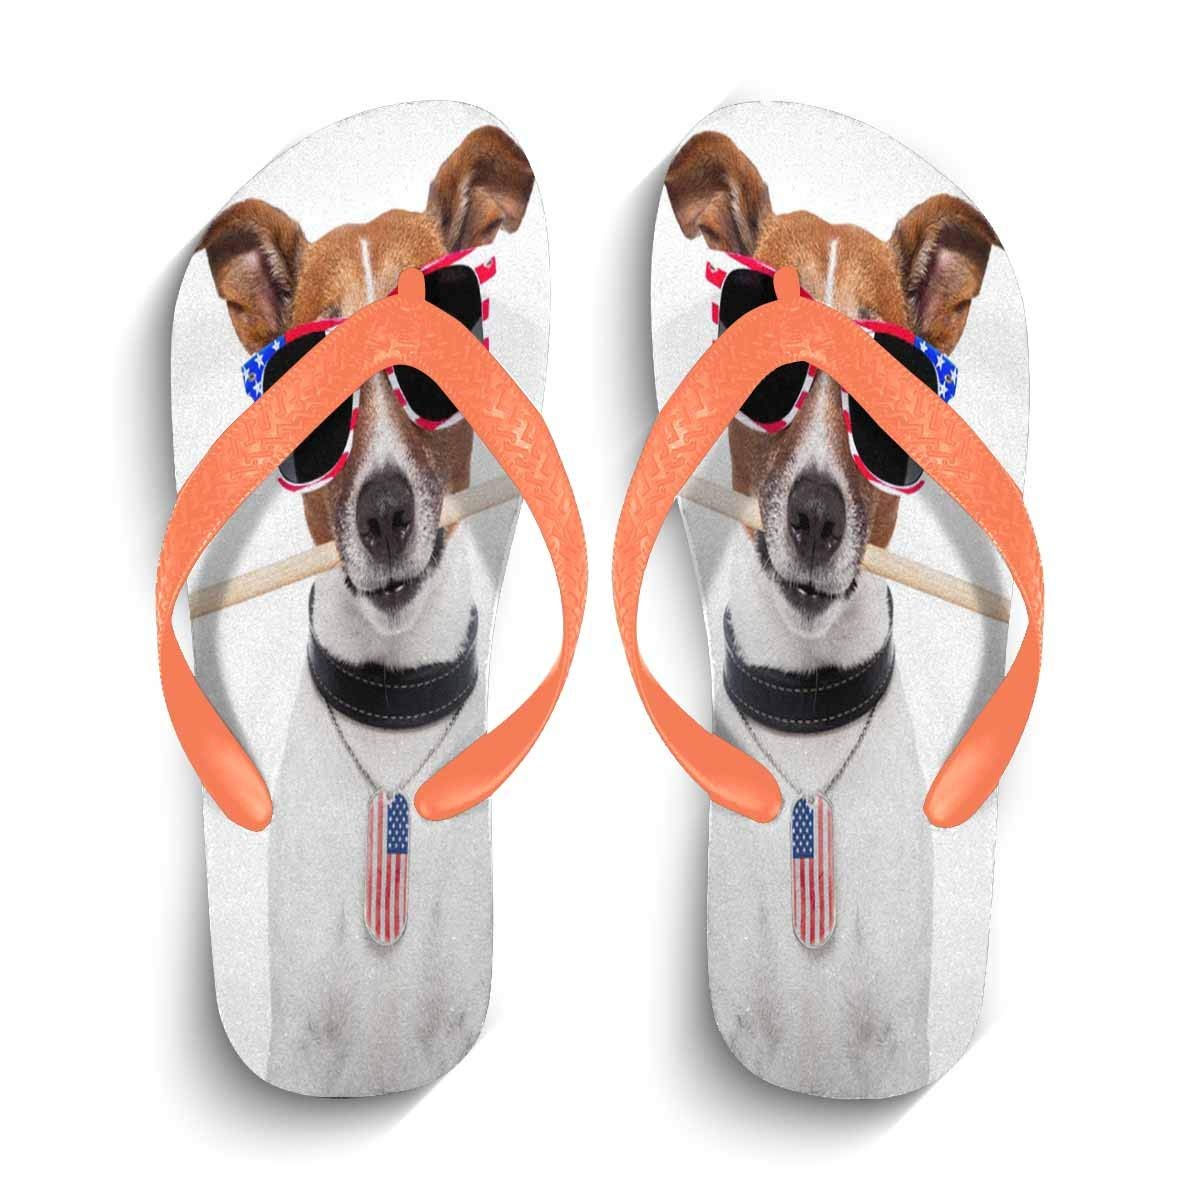 MingDe Sports Women's Indoor Bathroom House Shower Sandal Outdoor Pool Swimming Spa Slippers